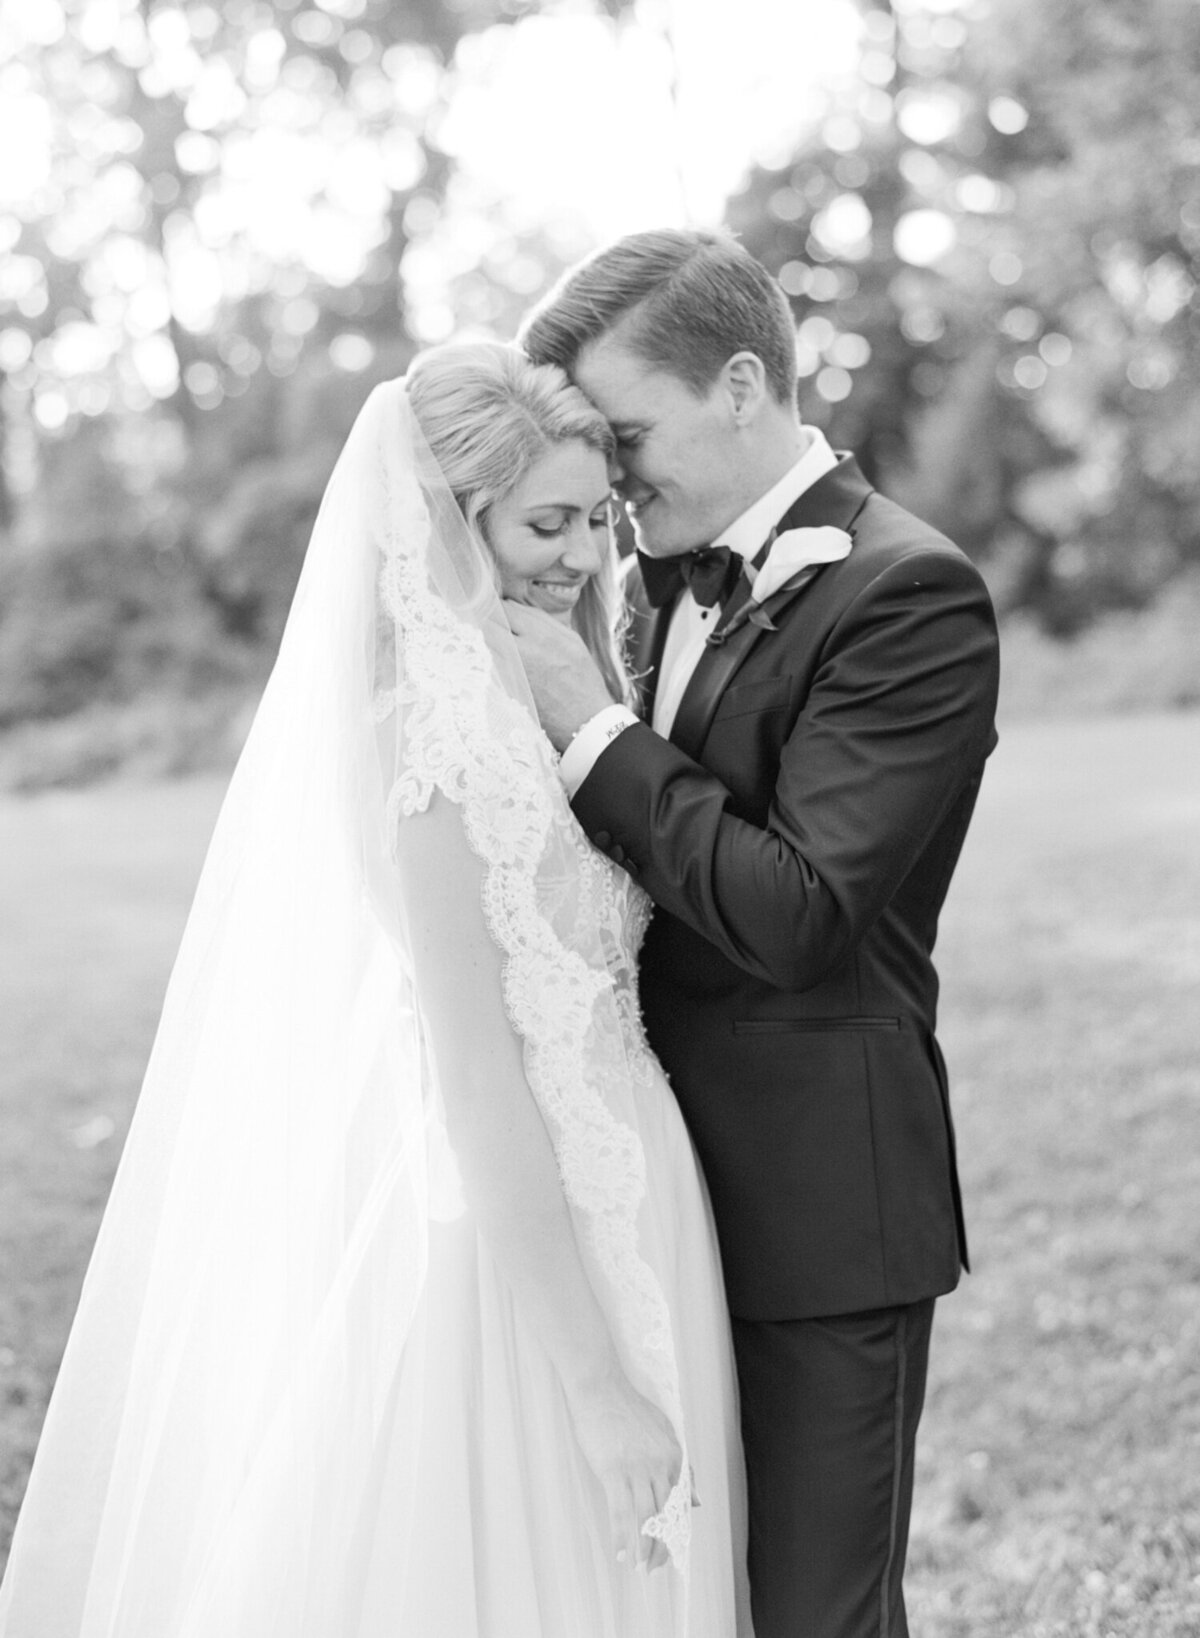 2018 Best Film Wedding Photographer - Best of 2018 Lauren Fair Photography Luxury Film Destination Wedding Photographer_0038